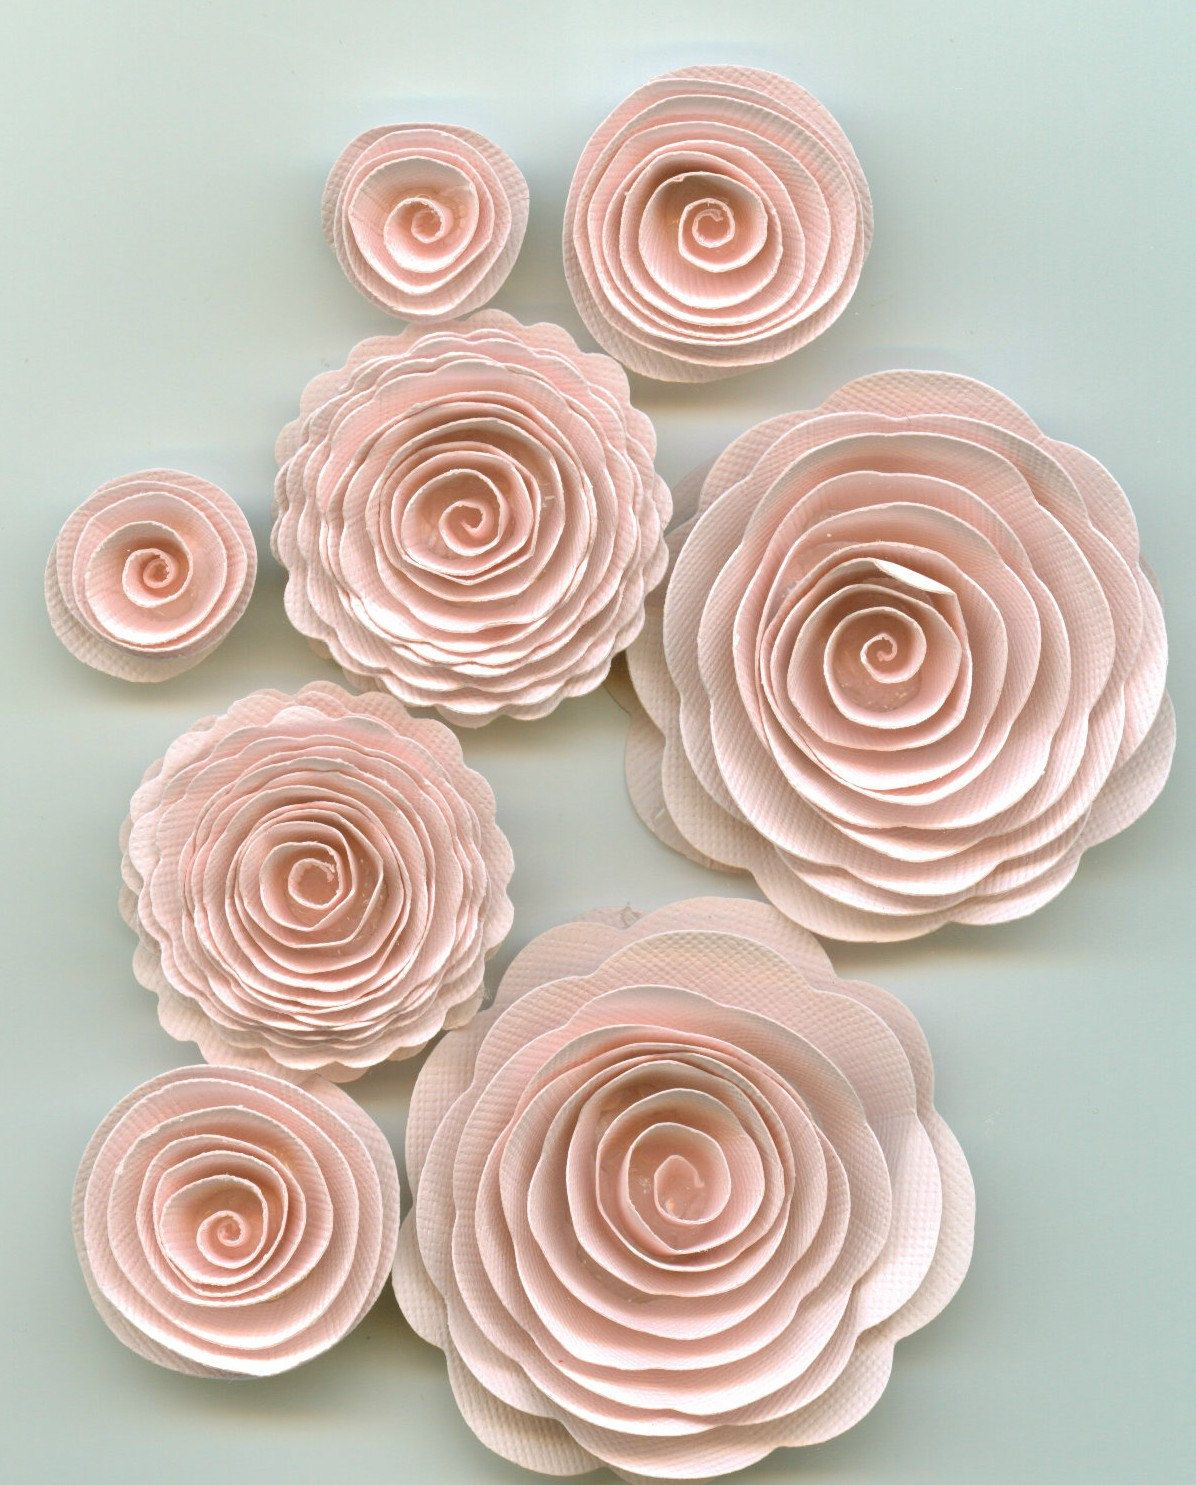 Muslin Nude Pink Spiral Paper Flowers 370 Usd By Crazy2becrazy